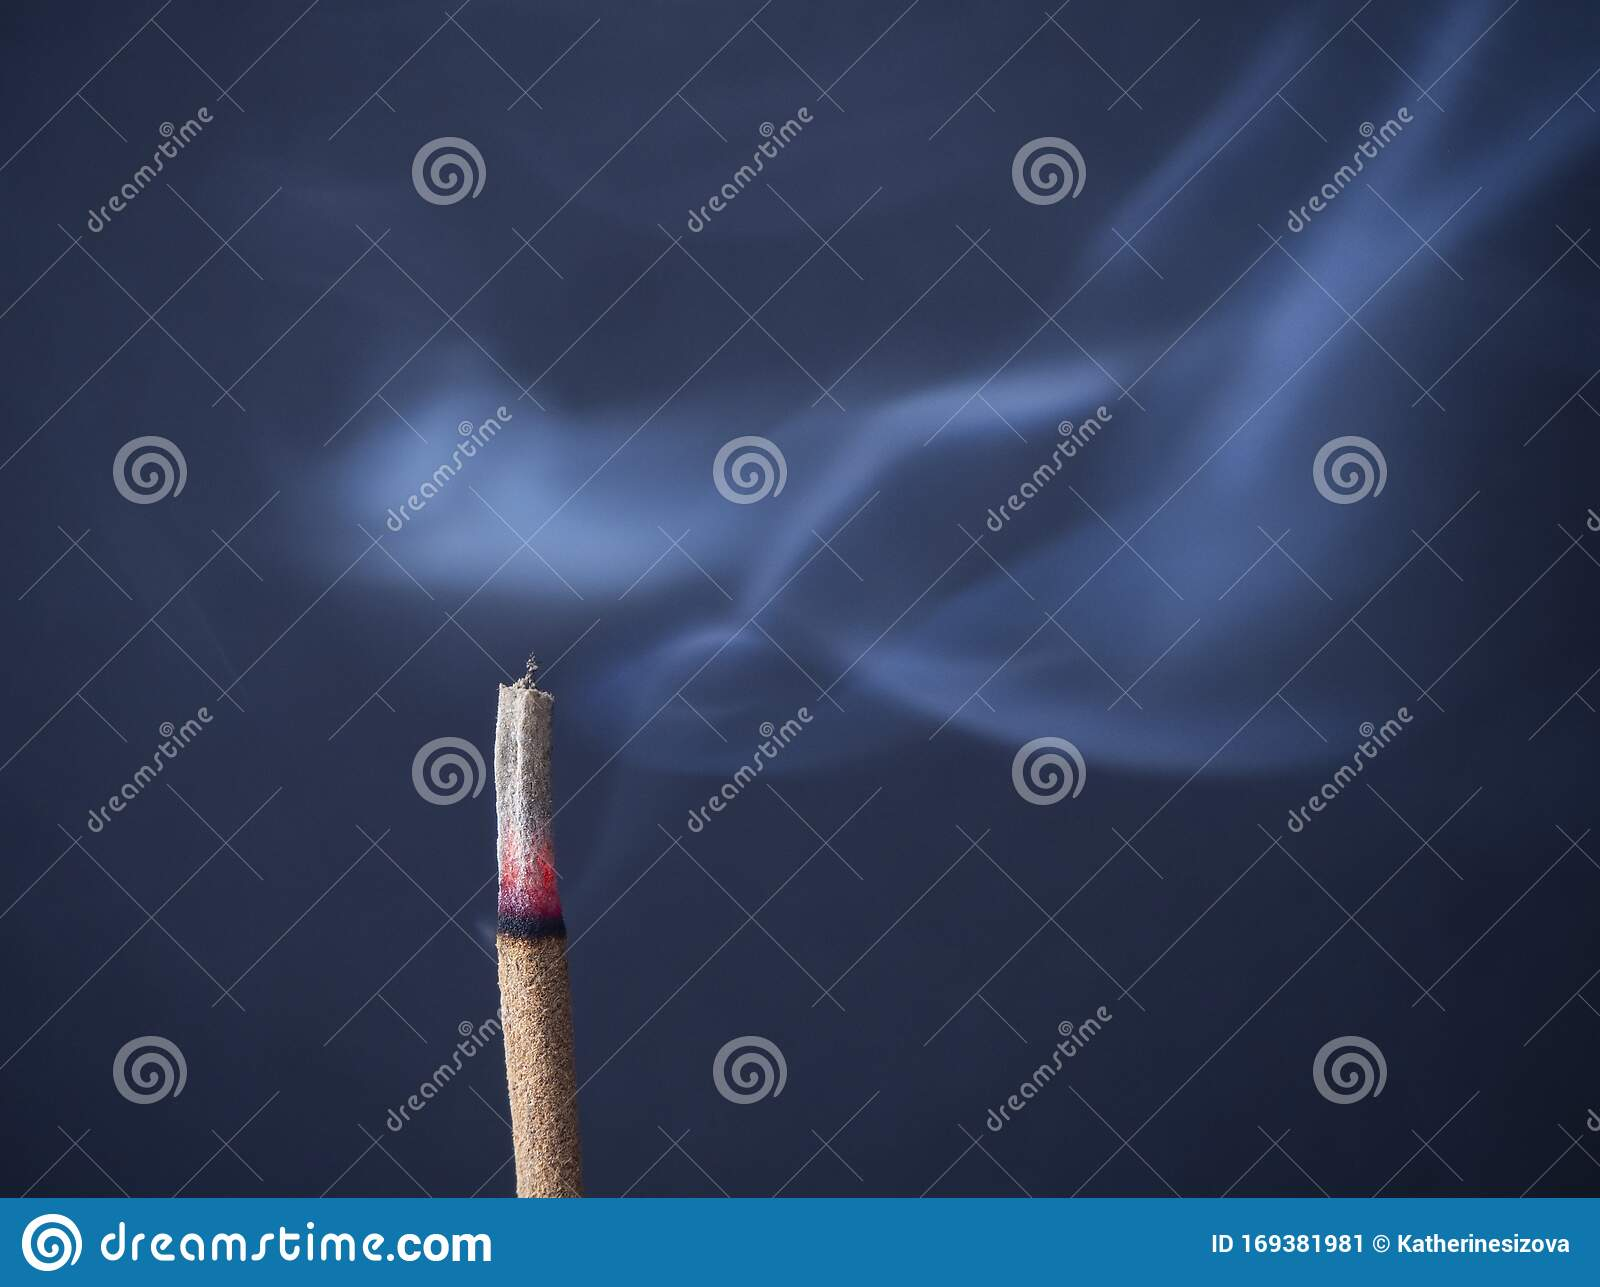 Burning Aromatic Incense Stick With Cinder And Smoke On A Gray Background With Copy Space Stock Image Image Of Aroma Background 169381981